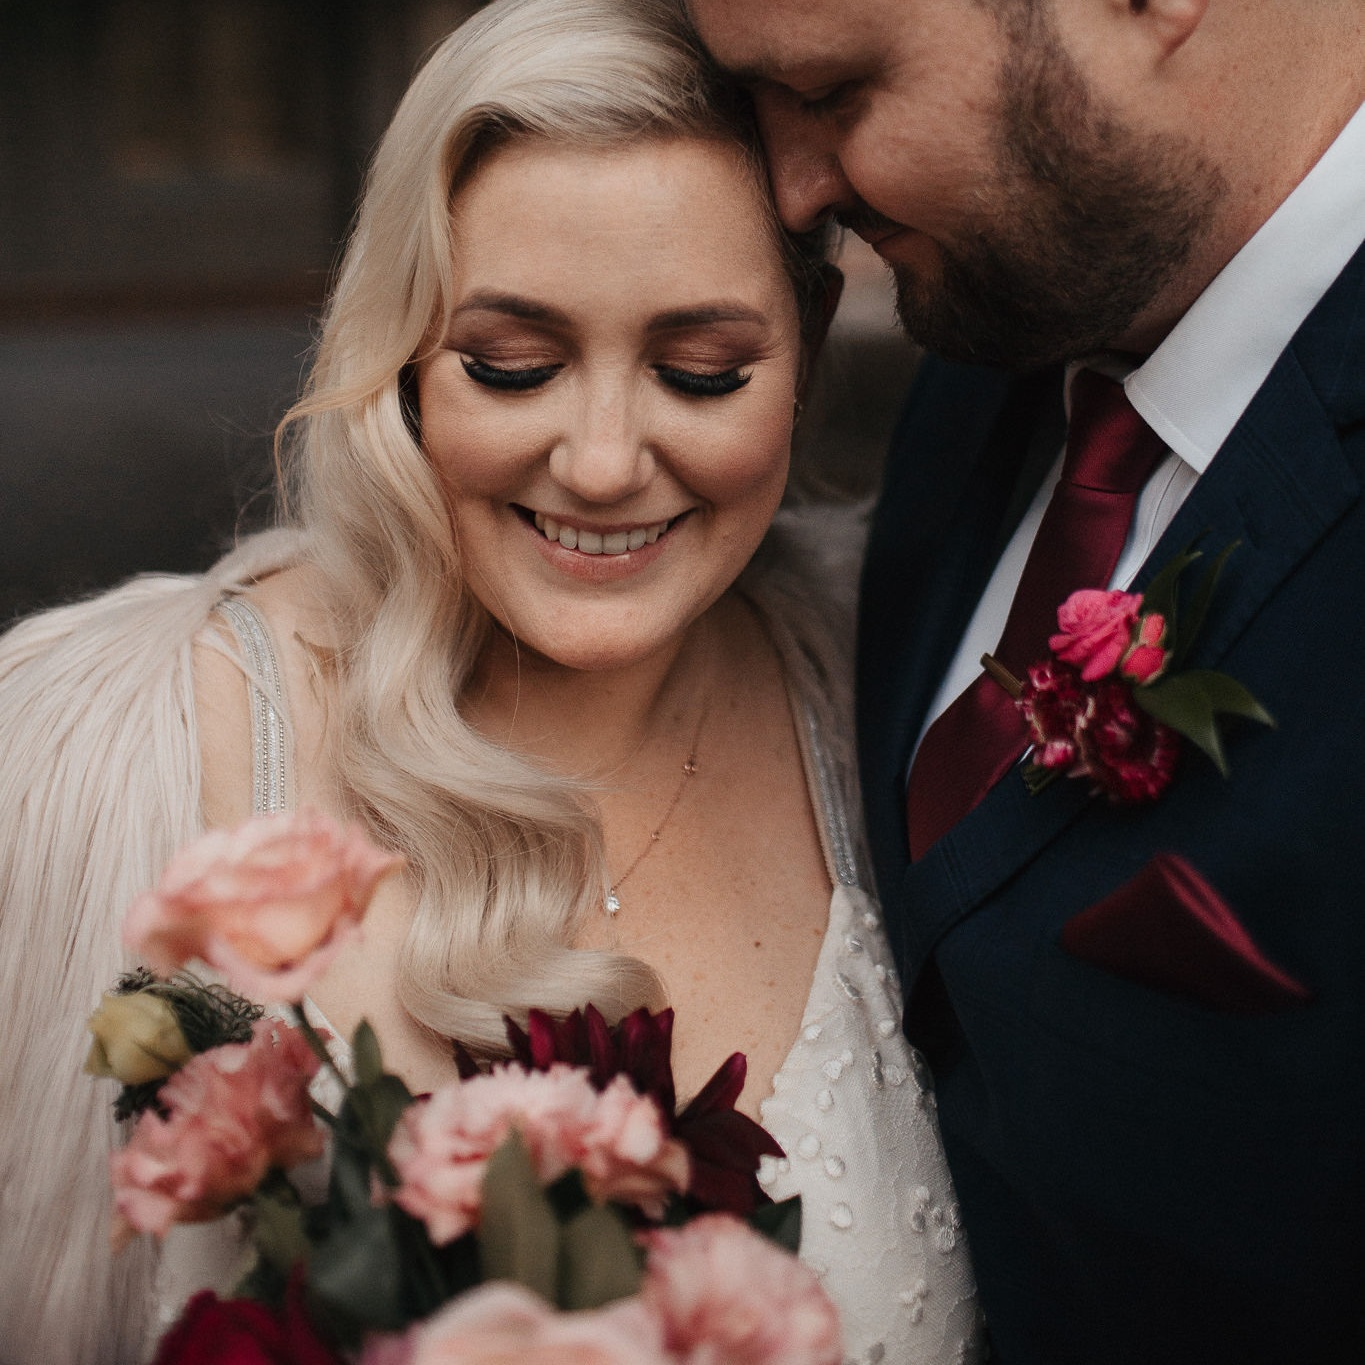 KRYSHINA & TIM - MARCH 2019   VIEW WEDDING